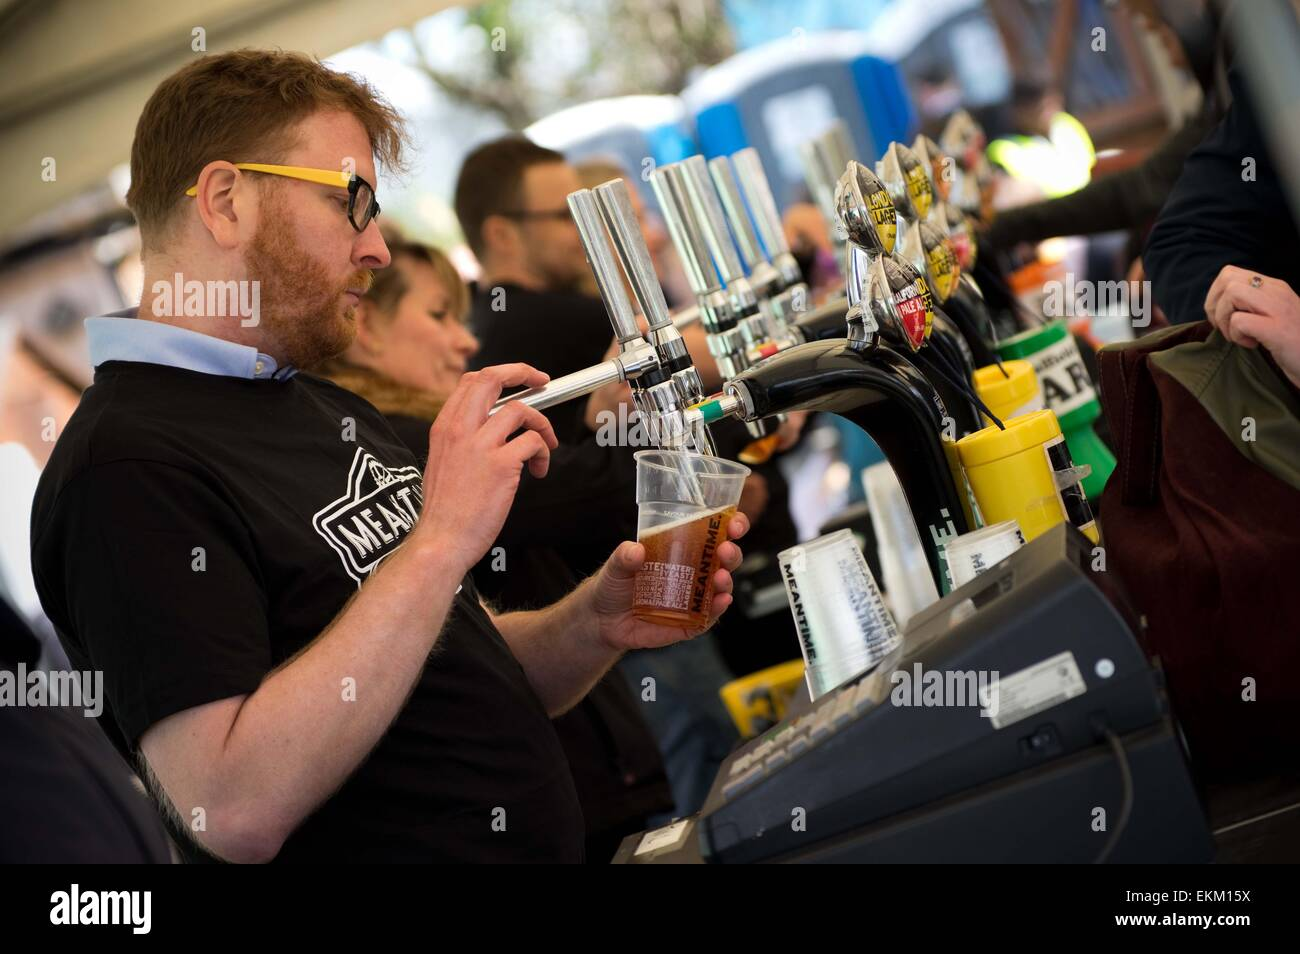 London, United Kingdom. 11th Apr, 2015. Refreshments are being severed at the venue. Annual goat racing event hosted - Stock Image